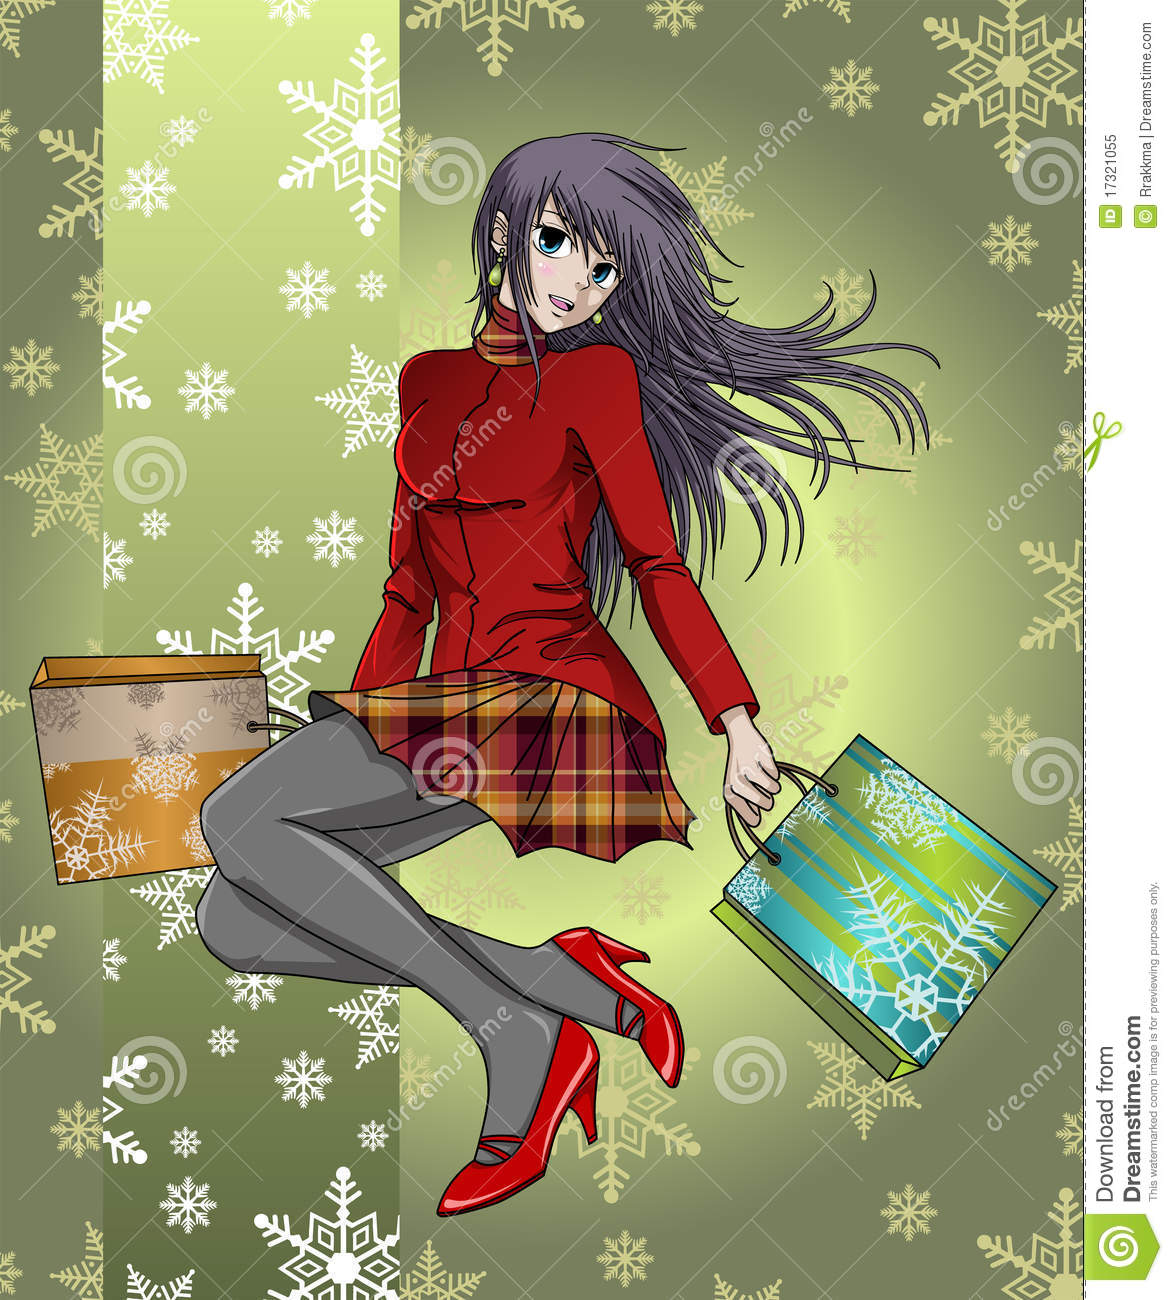 anime girl shopping in christmas - with background stock illustration